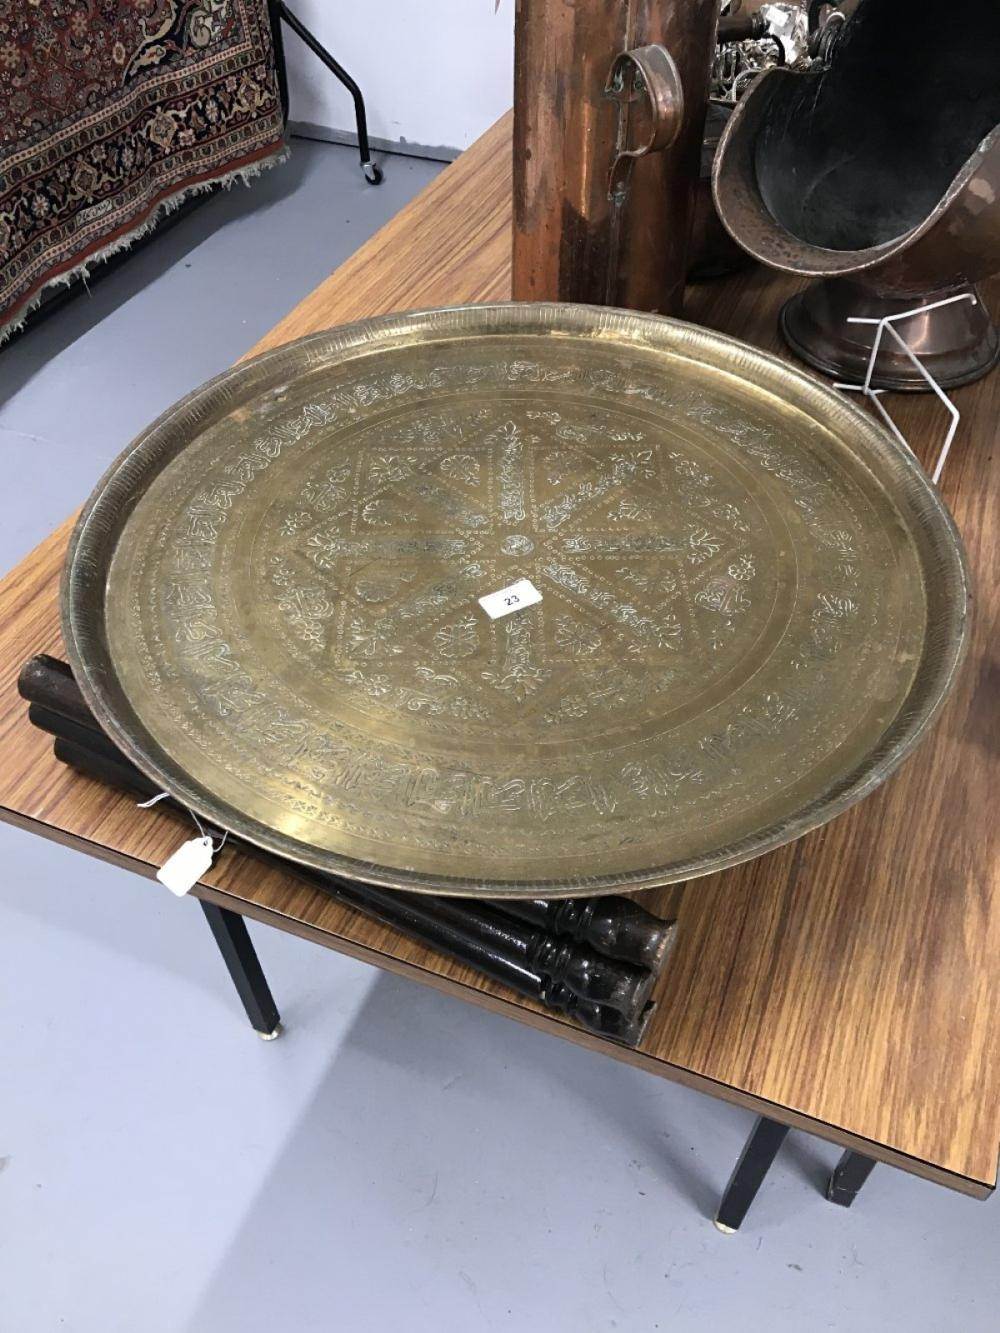 19th/20th cent. Islamic brass table, folding treen supports.